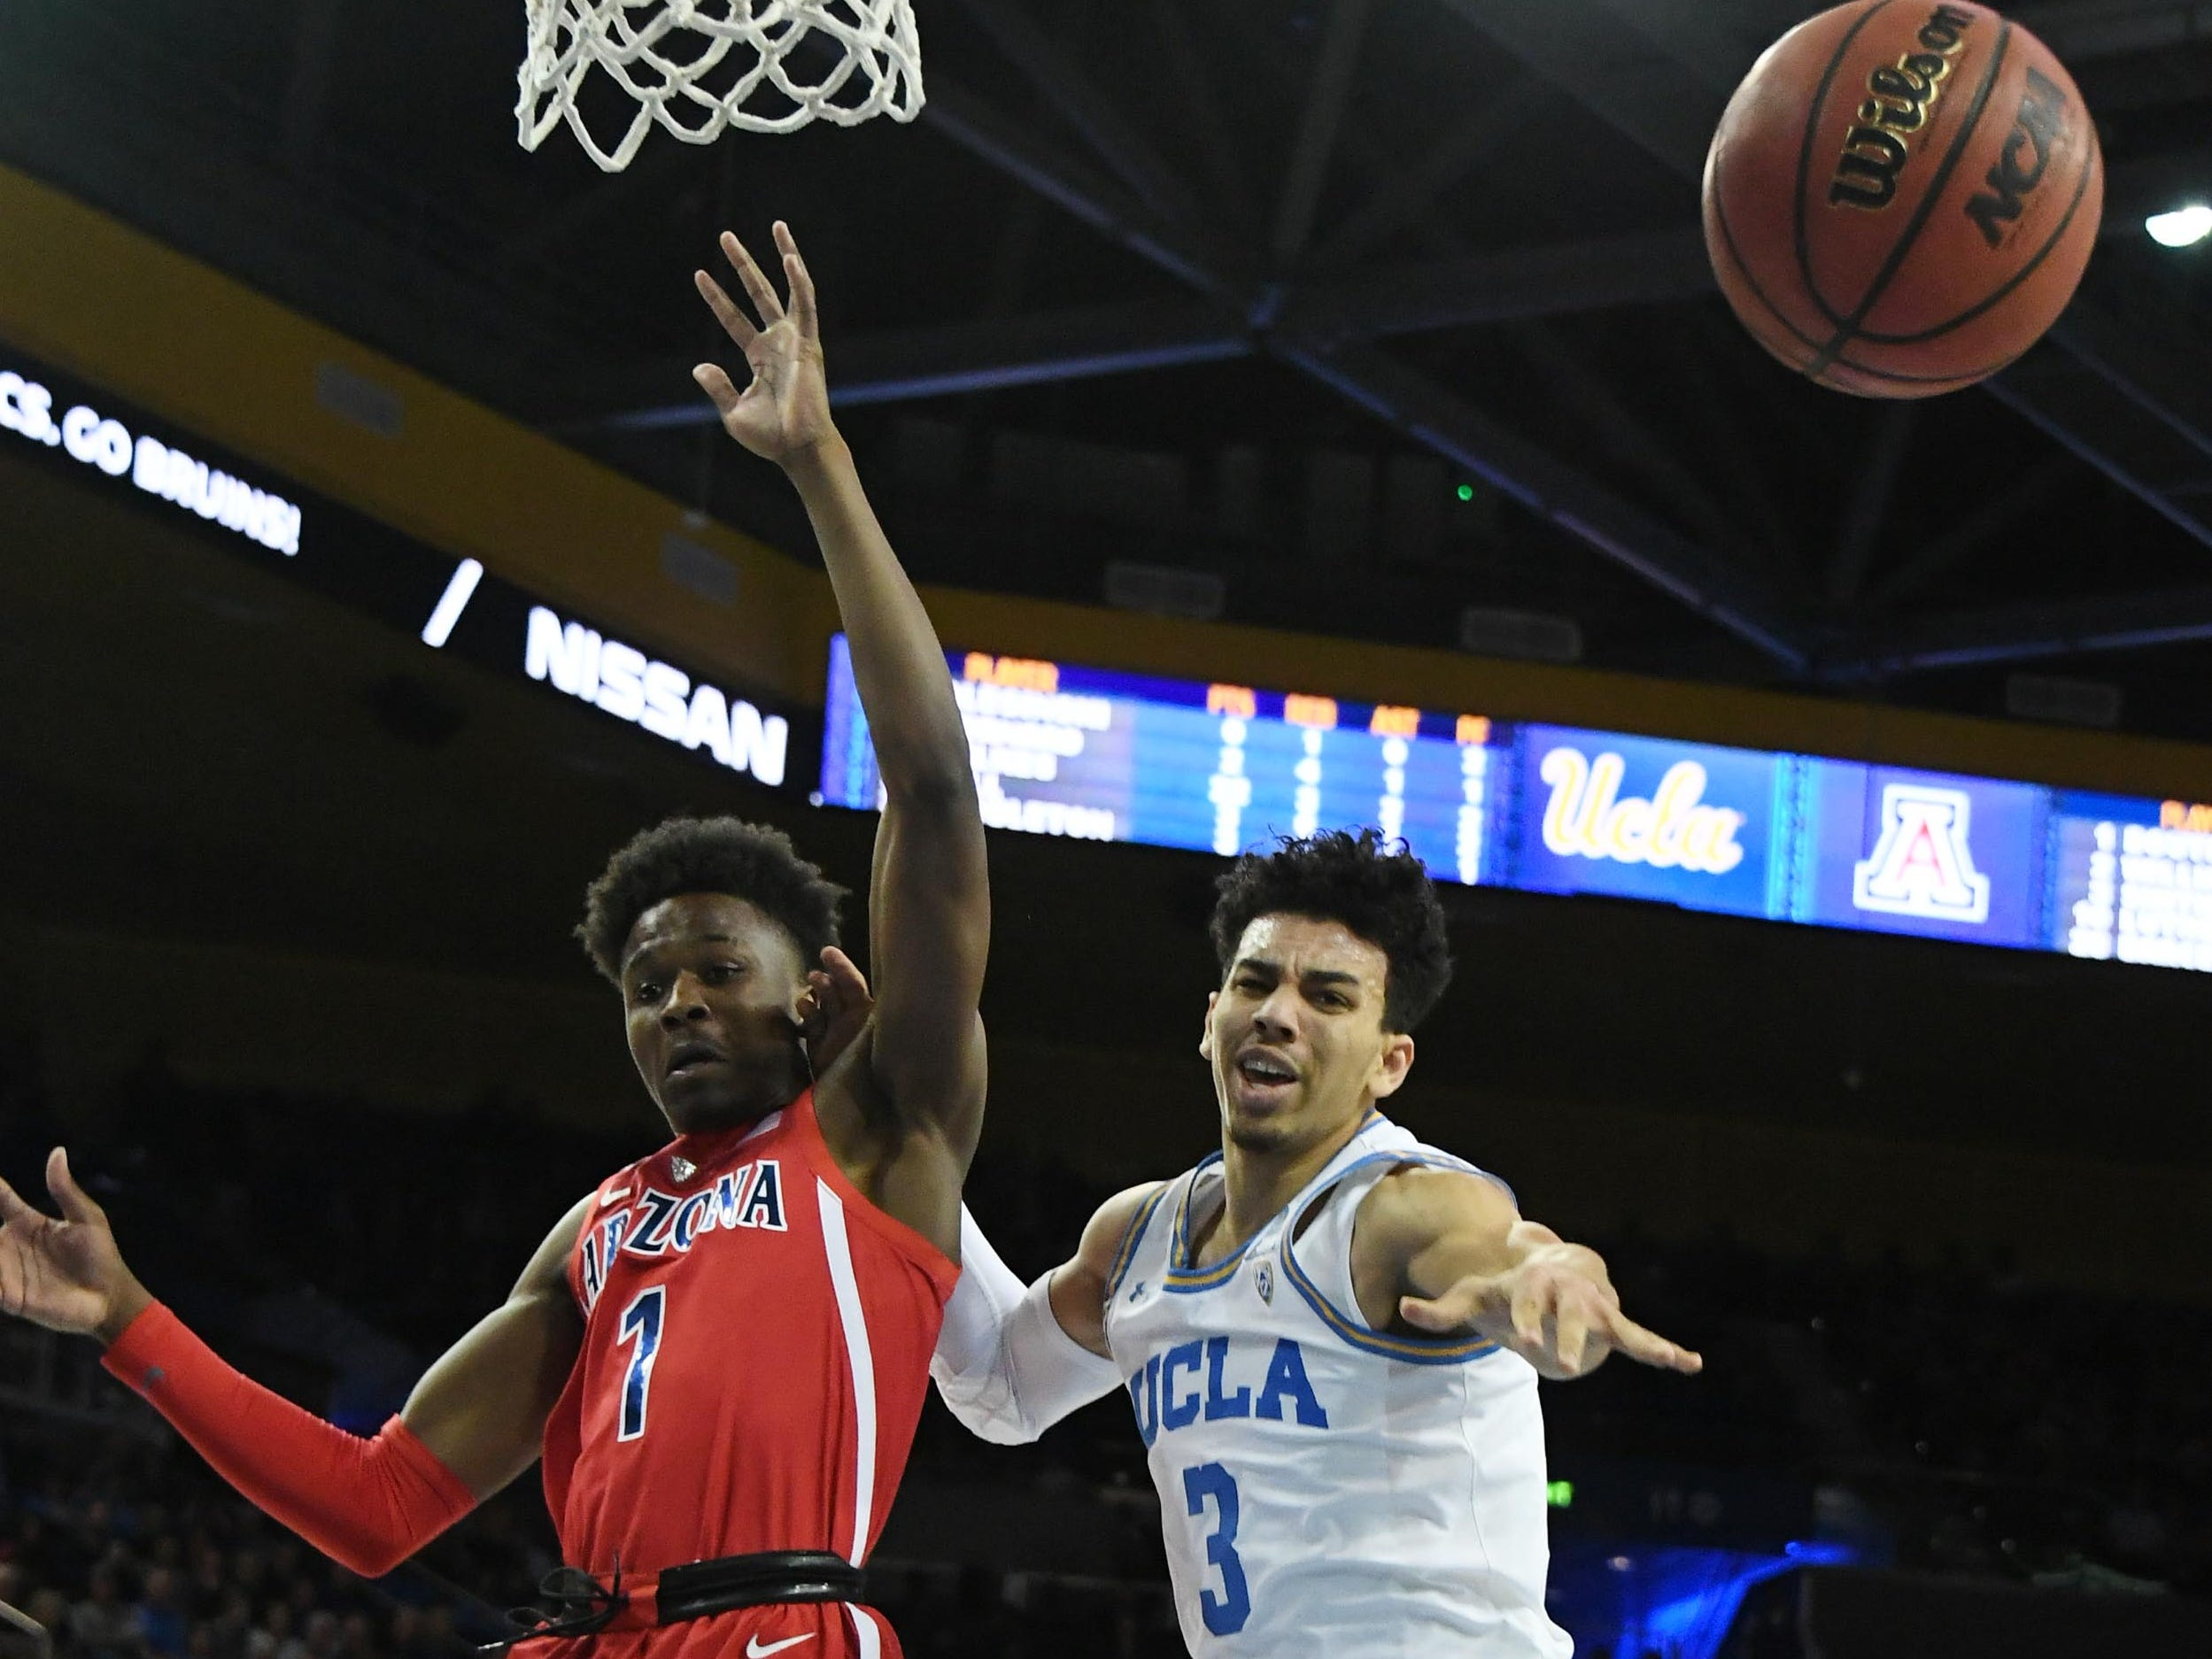 Jan 26, 2019; Los Angeles, CA, USA; UCLA Bruins guard Jules Bernard (3) passes the ball away from Arizona Wildcats guard Devonaire Doutrive (1) in the second half at Pauley Pavilion.